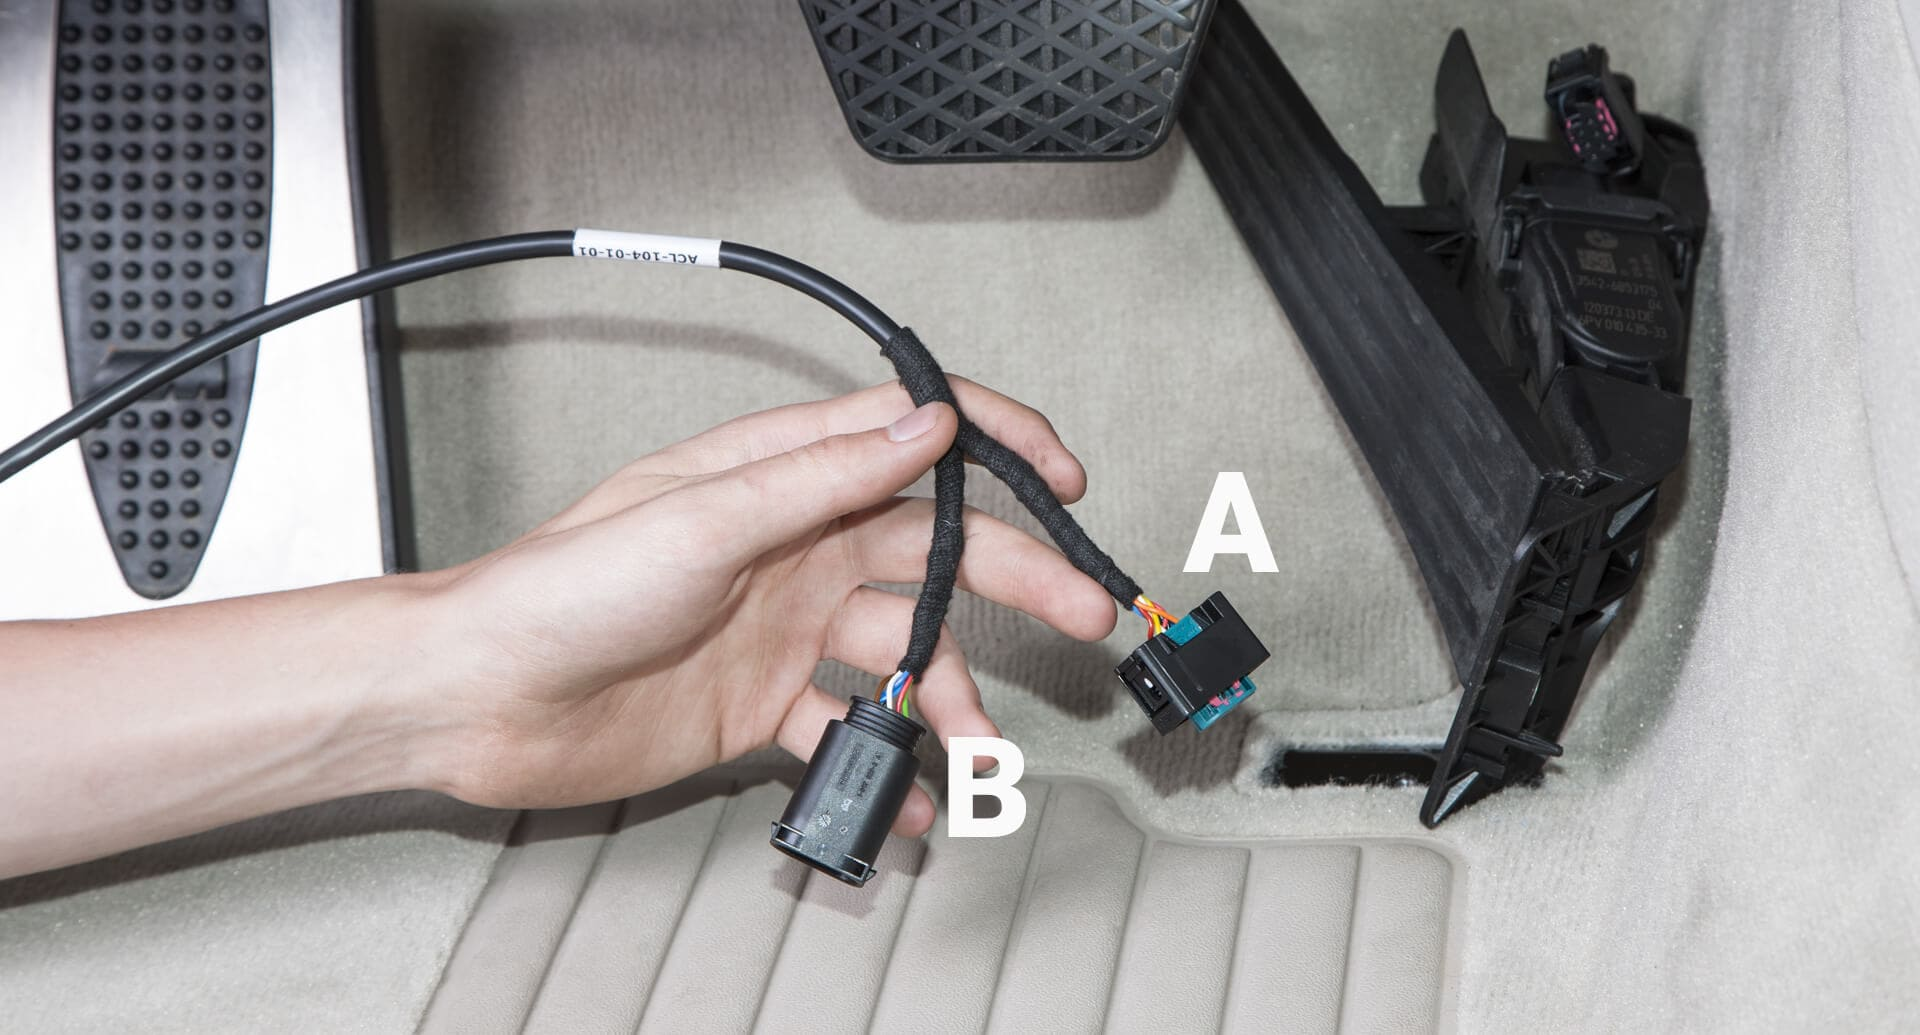 Chip tuning installation - What you need to know about the installation